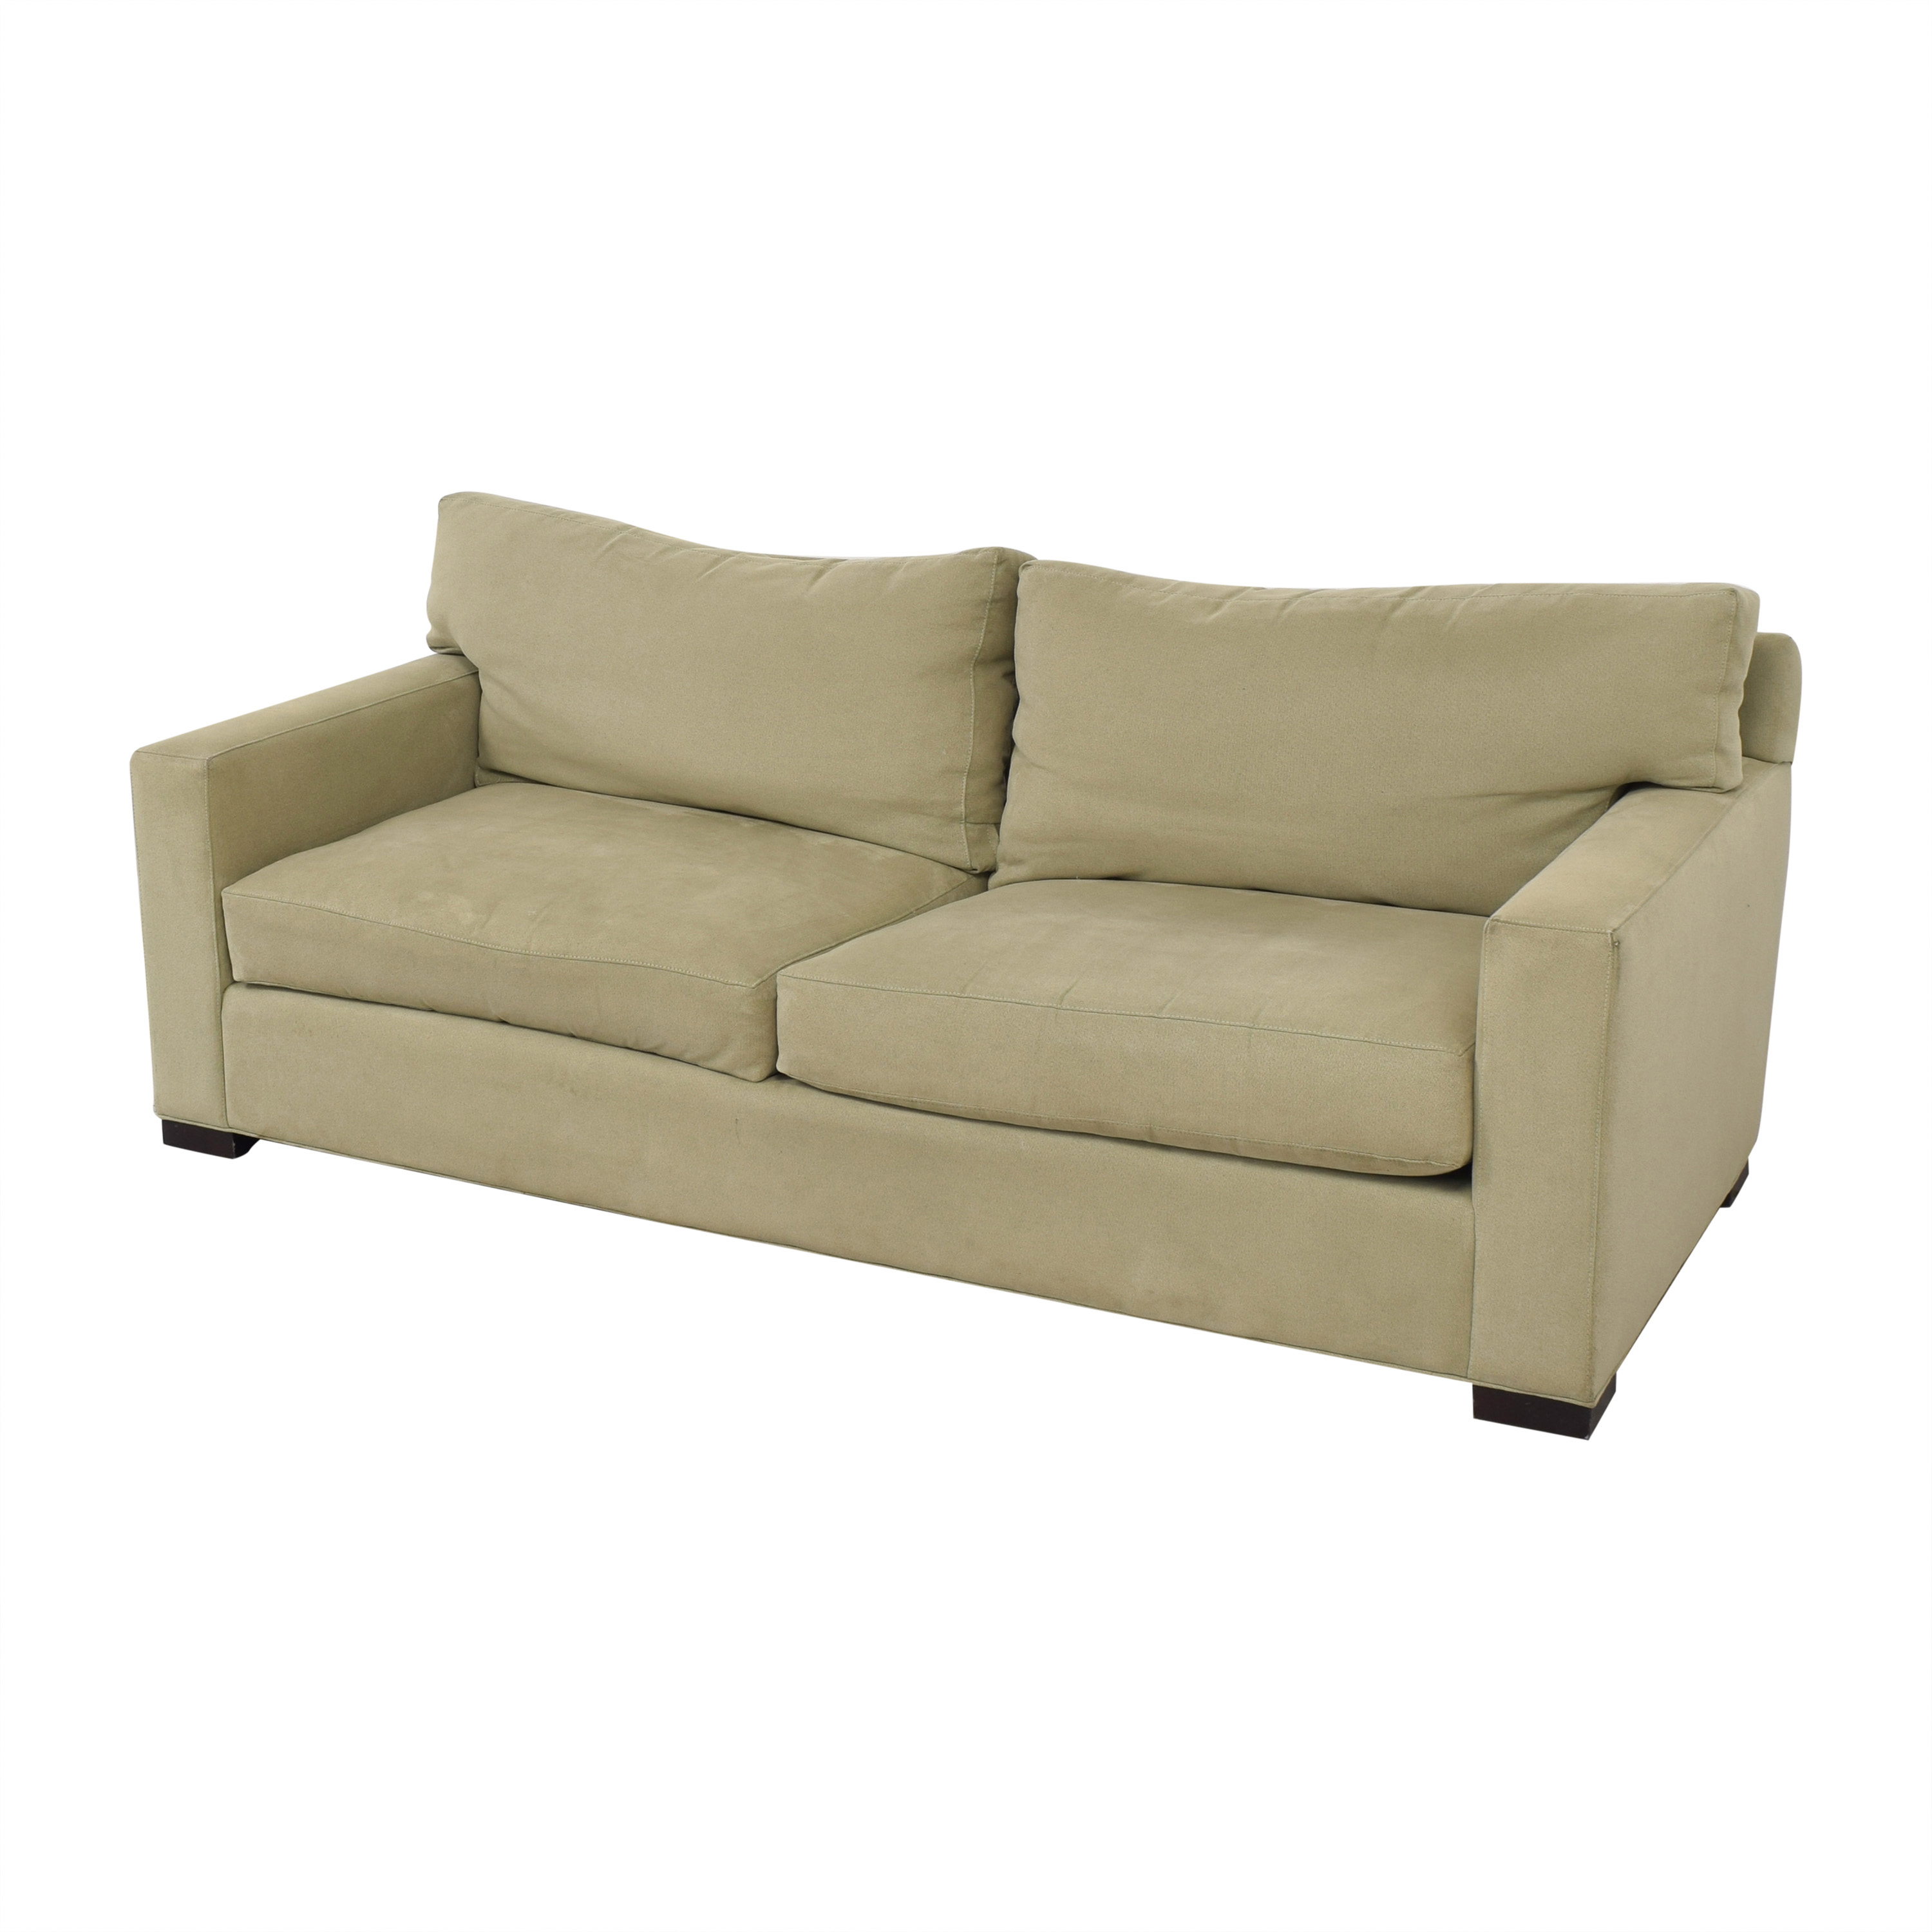 shop Crate & Barrel Crate & Barrel Axis II 2 Seat Sofa online